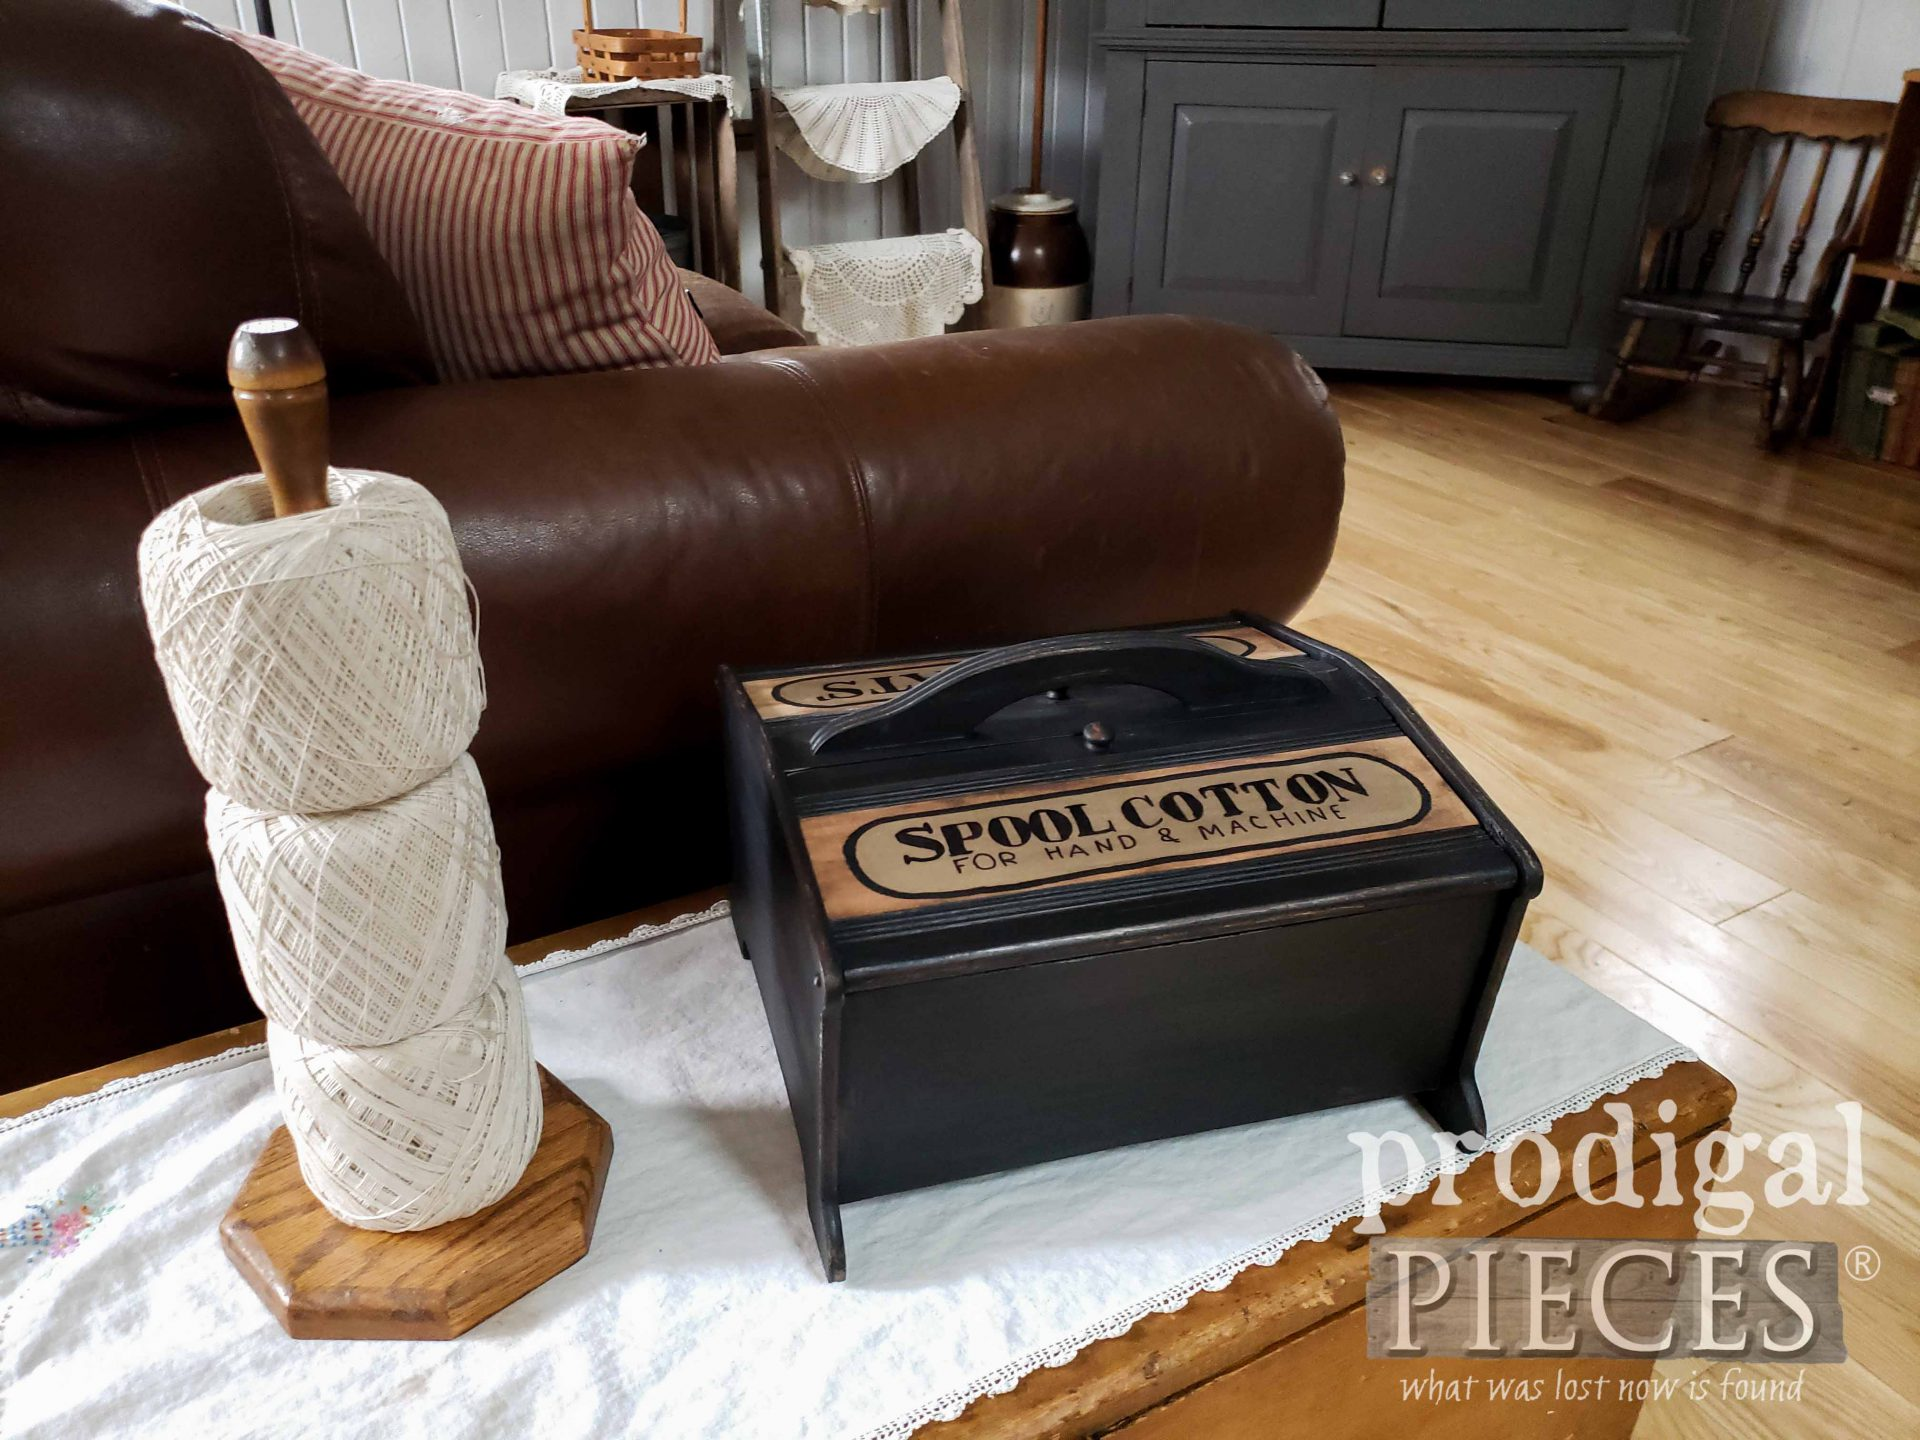 Upcycled Vintage Sewing Box for Farmhouse Storage by Larissa of Prodigal Pieces | prodigalpieces.com #prodigalpieces #diy #home #farmhouse #homedecor